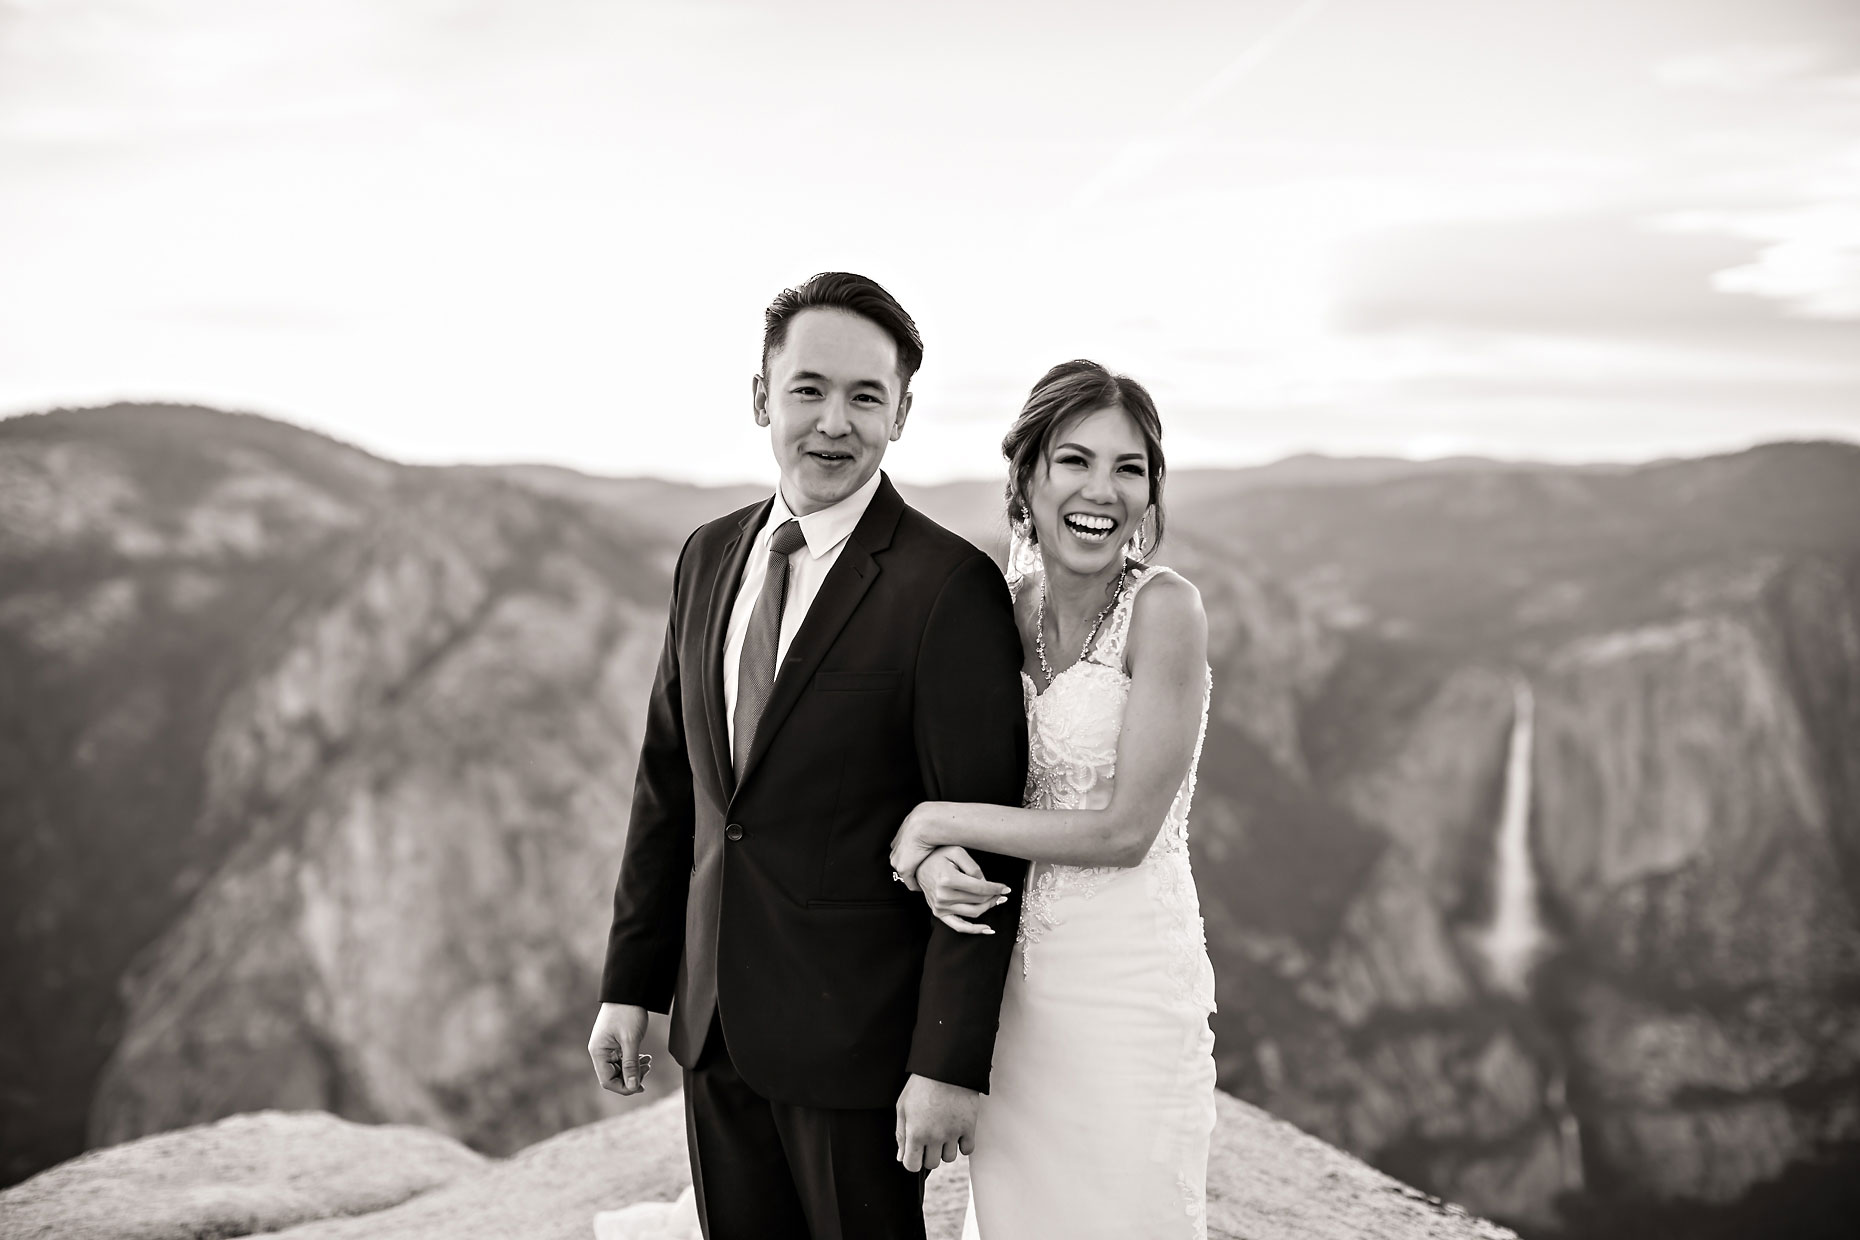 Taft Point intimate wedding elopement photographer in Yosemite.